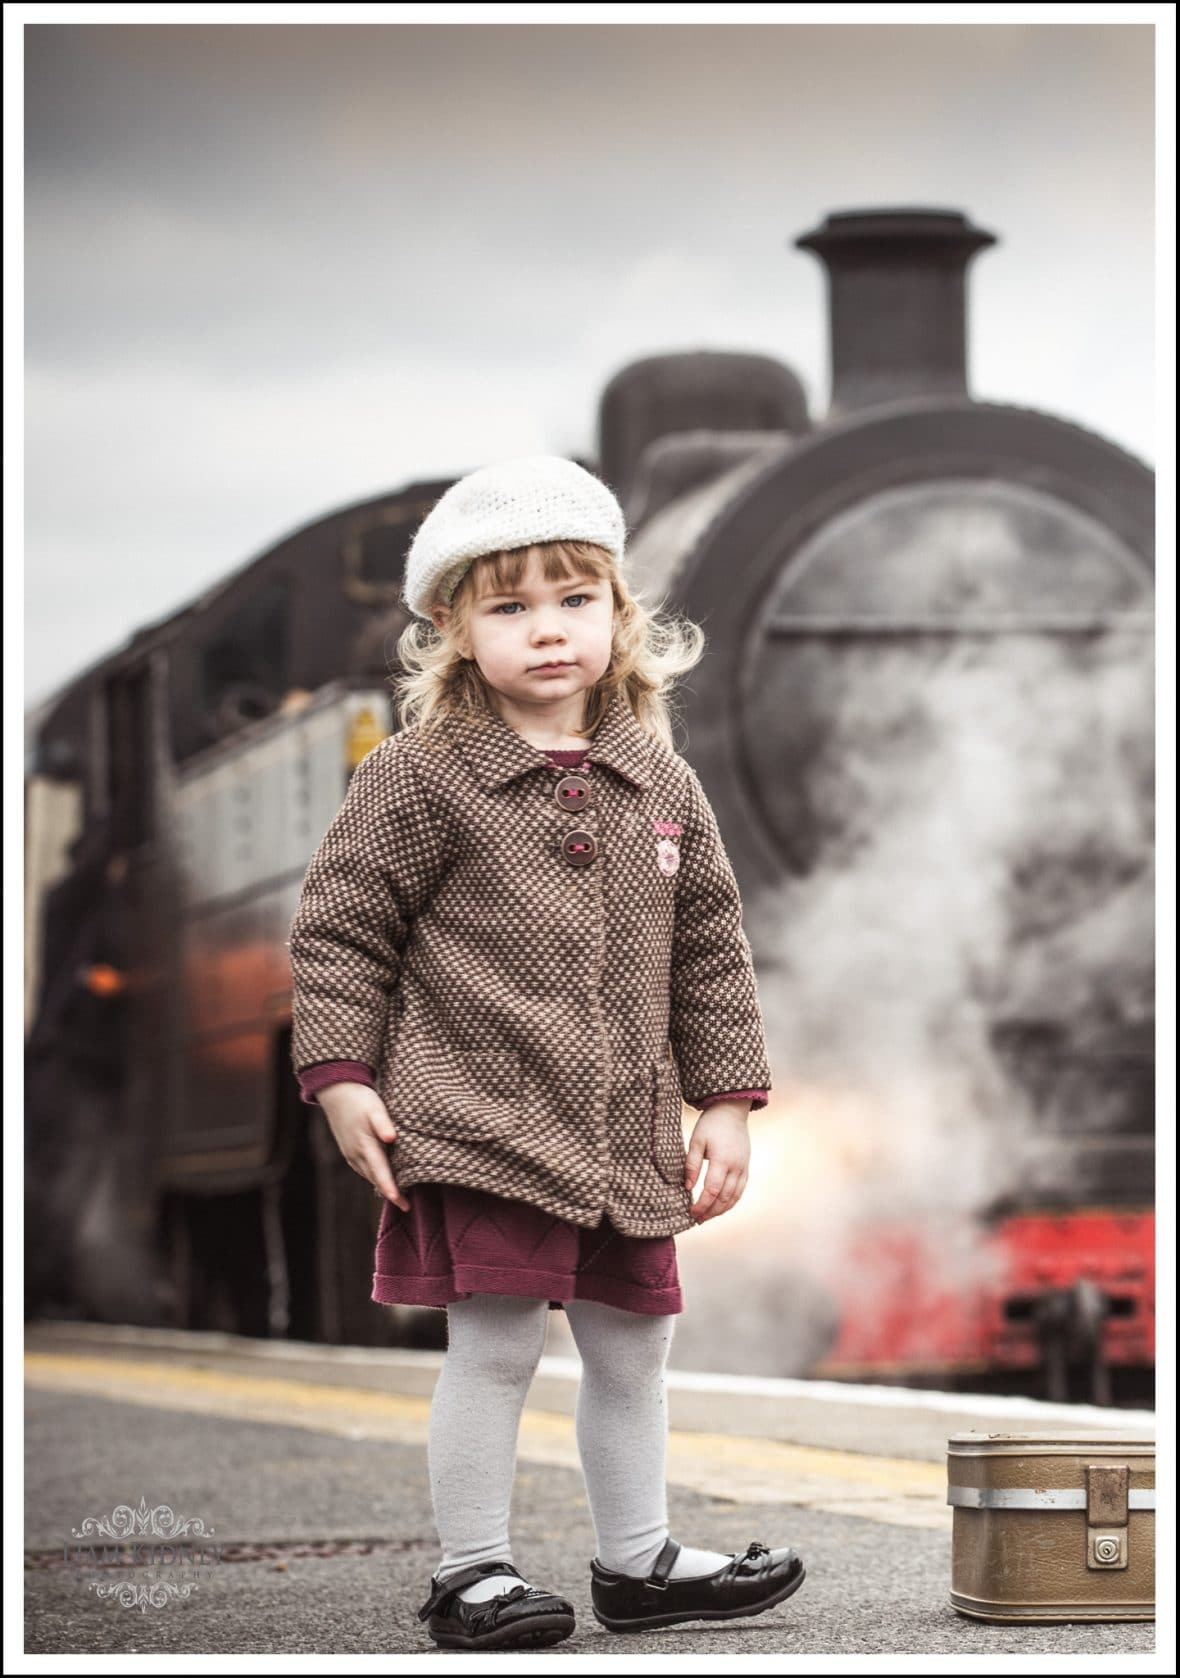 Aine in front of the Steam Train when it entered Athlone